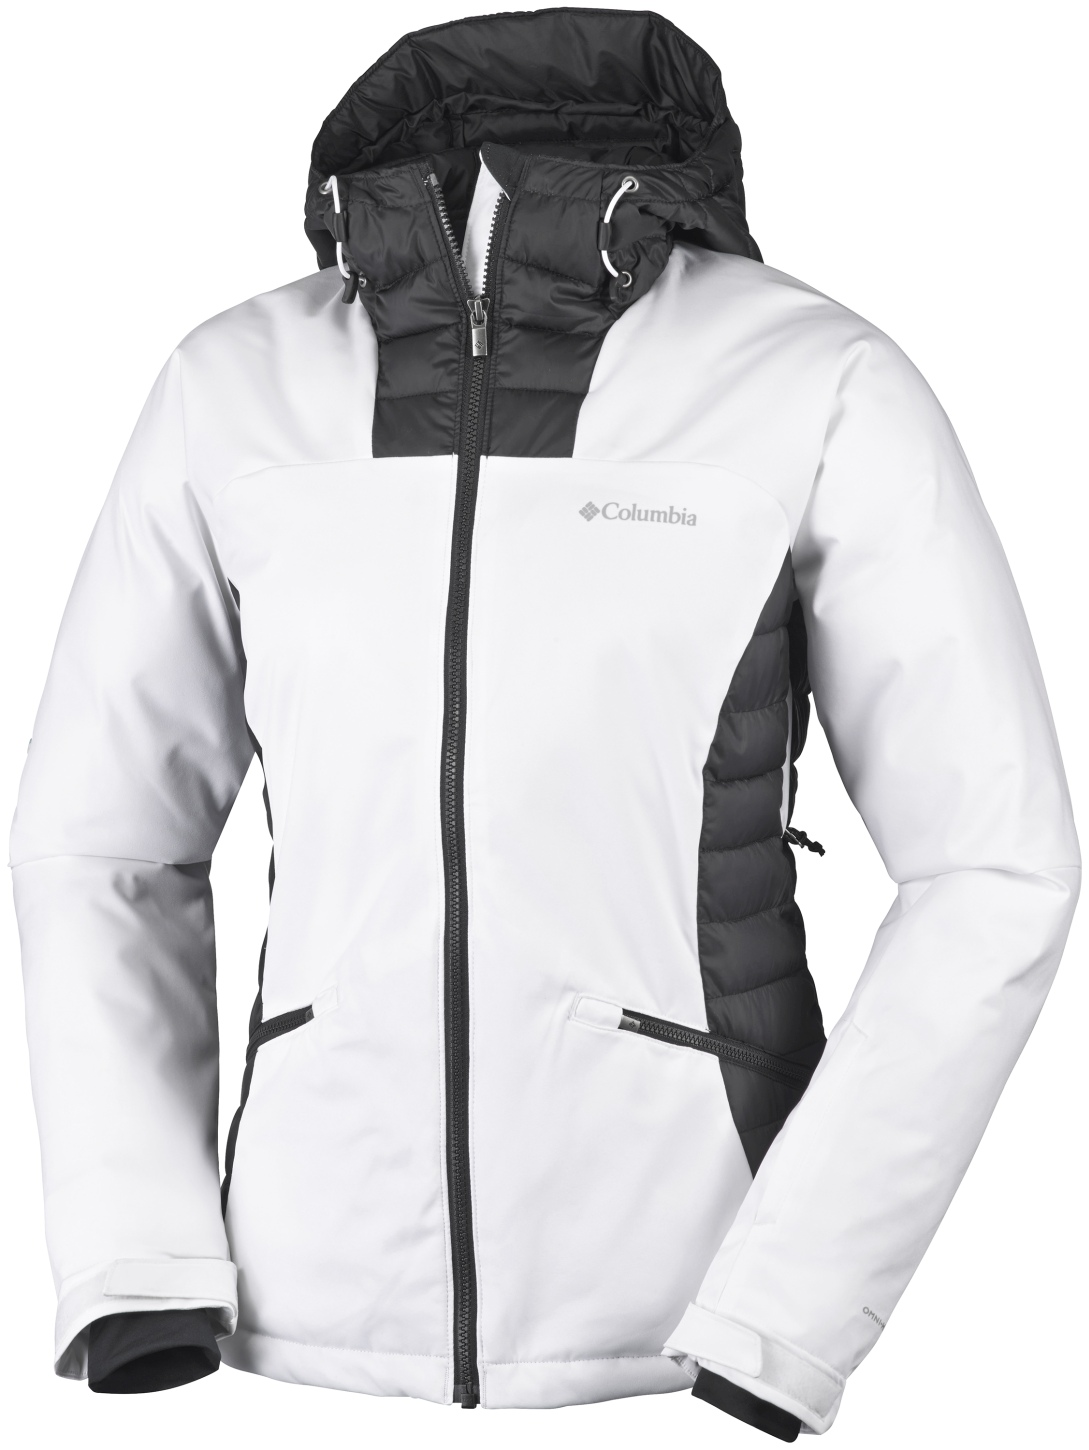 Columbia Women's Salcantay Hooded Ski Jacket White, Black-30